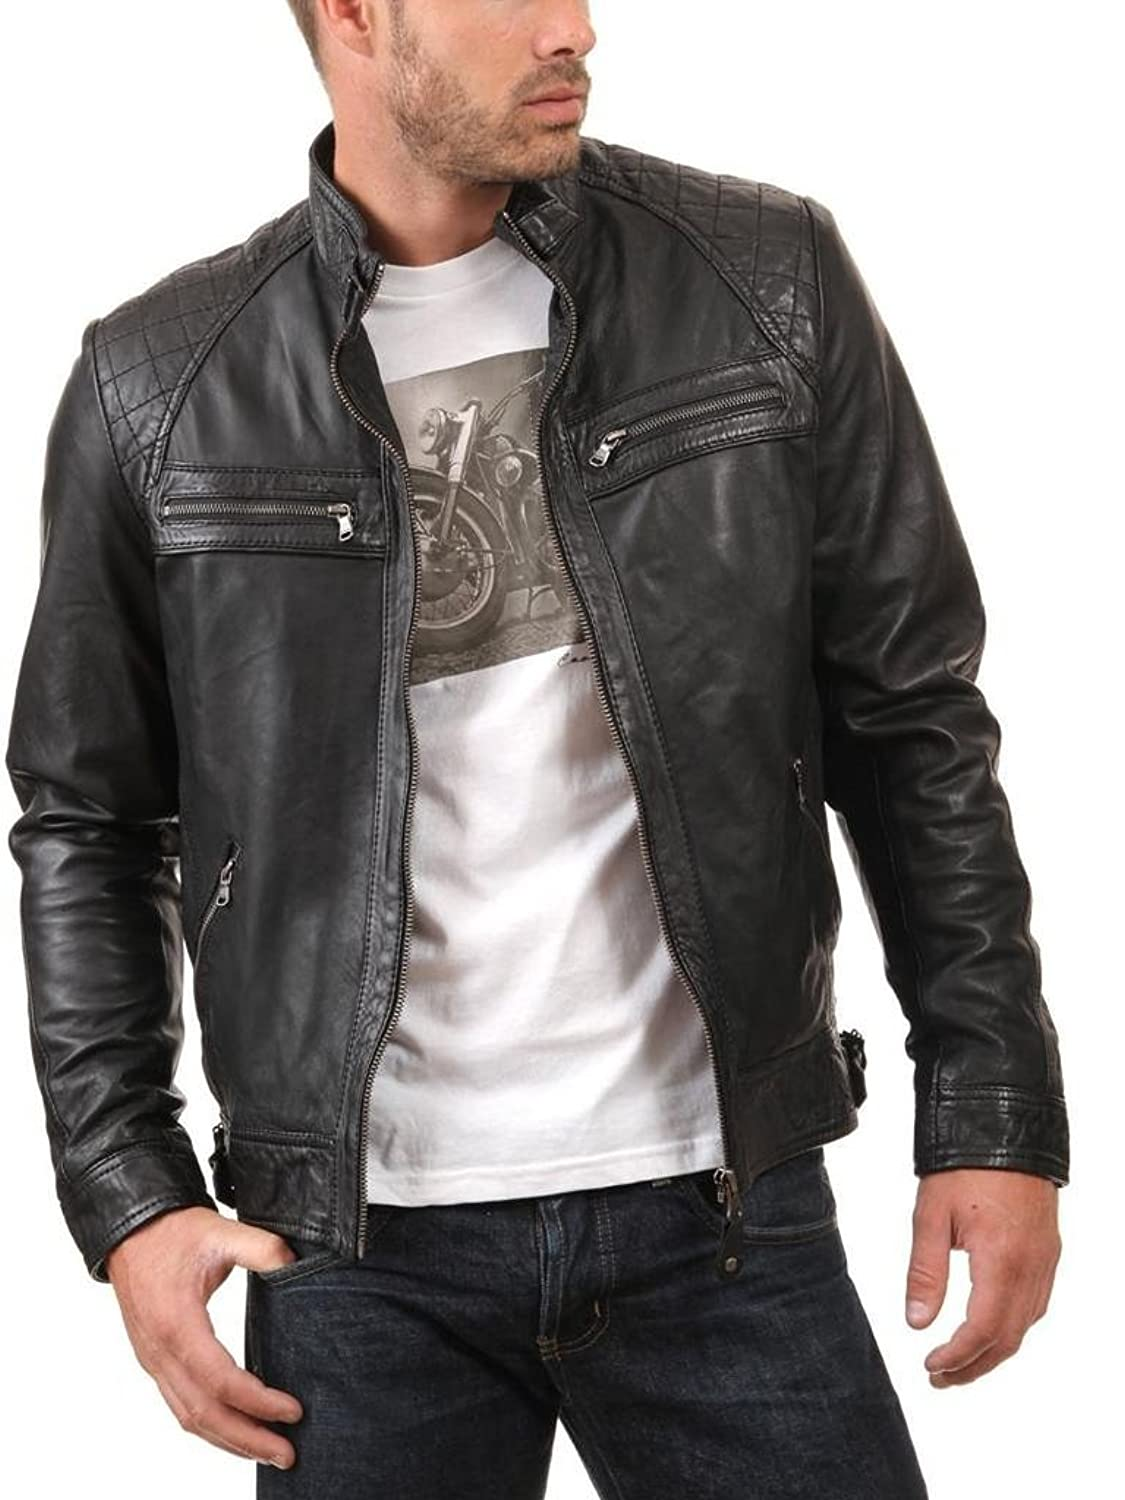 Western Leather Men&39s Leather Jacket Black at Amazon Men&39s